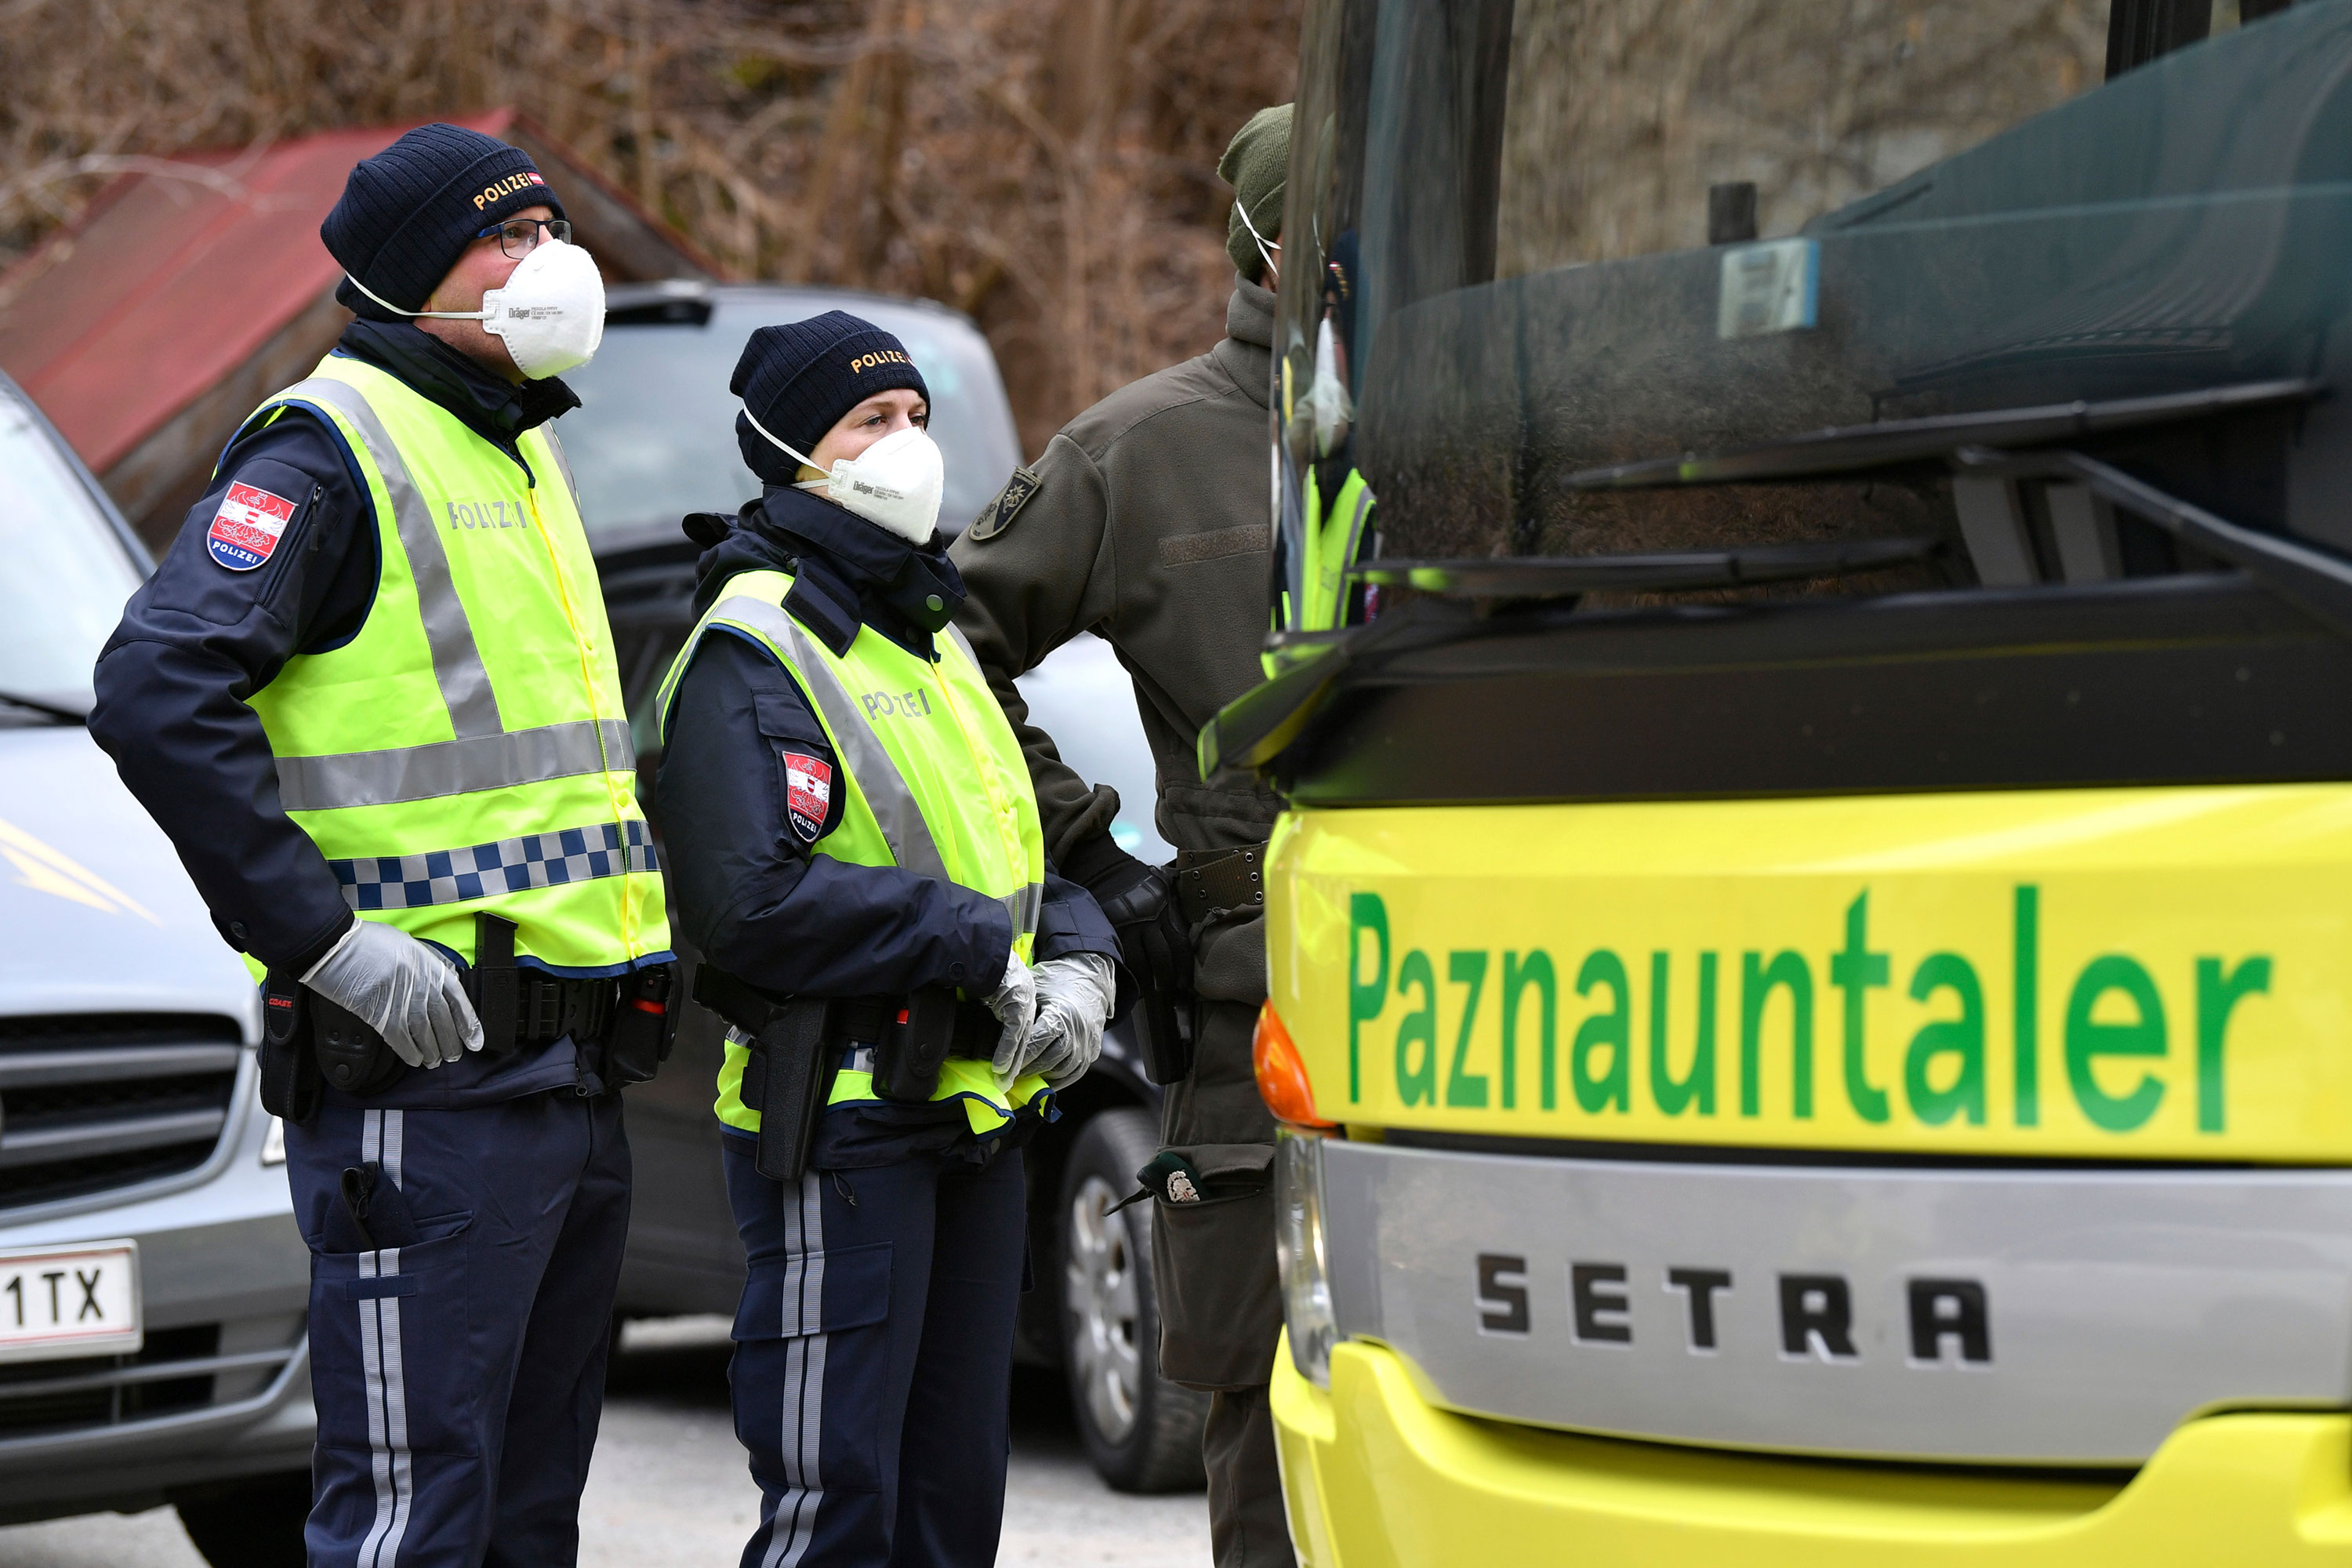 Police at a roadblock stop a bus from driving out of Paznauntal, Austria, on March 14. The towns of St. Anton am Arlberg in the Paznauntal area are isolated for 14 days.